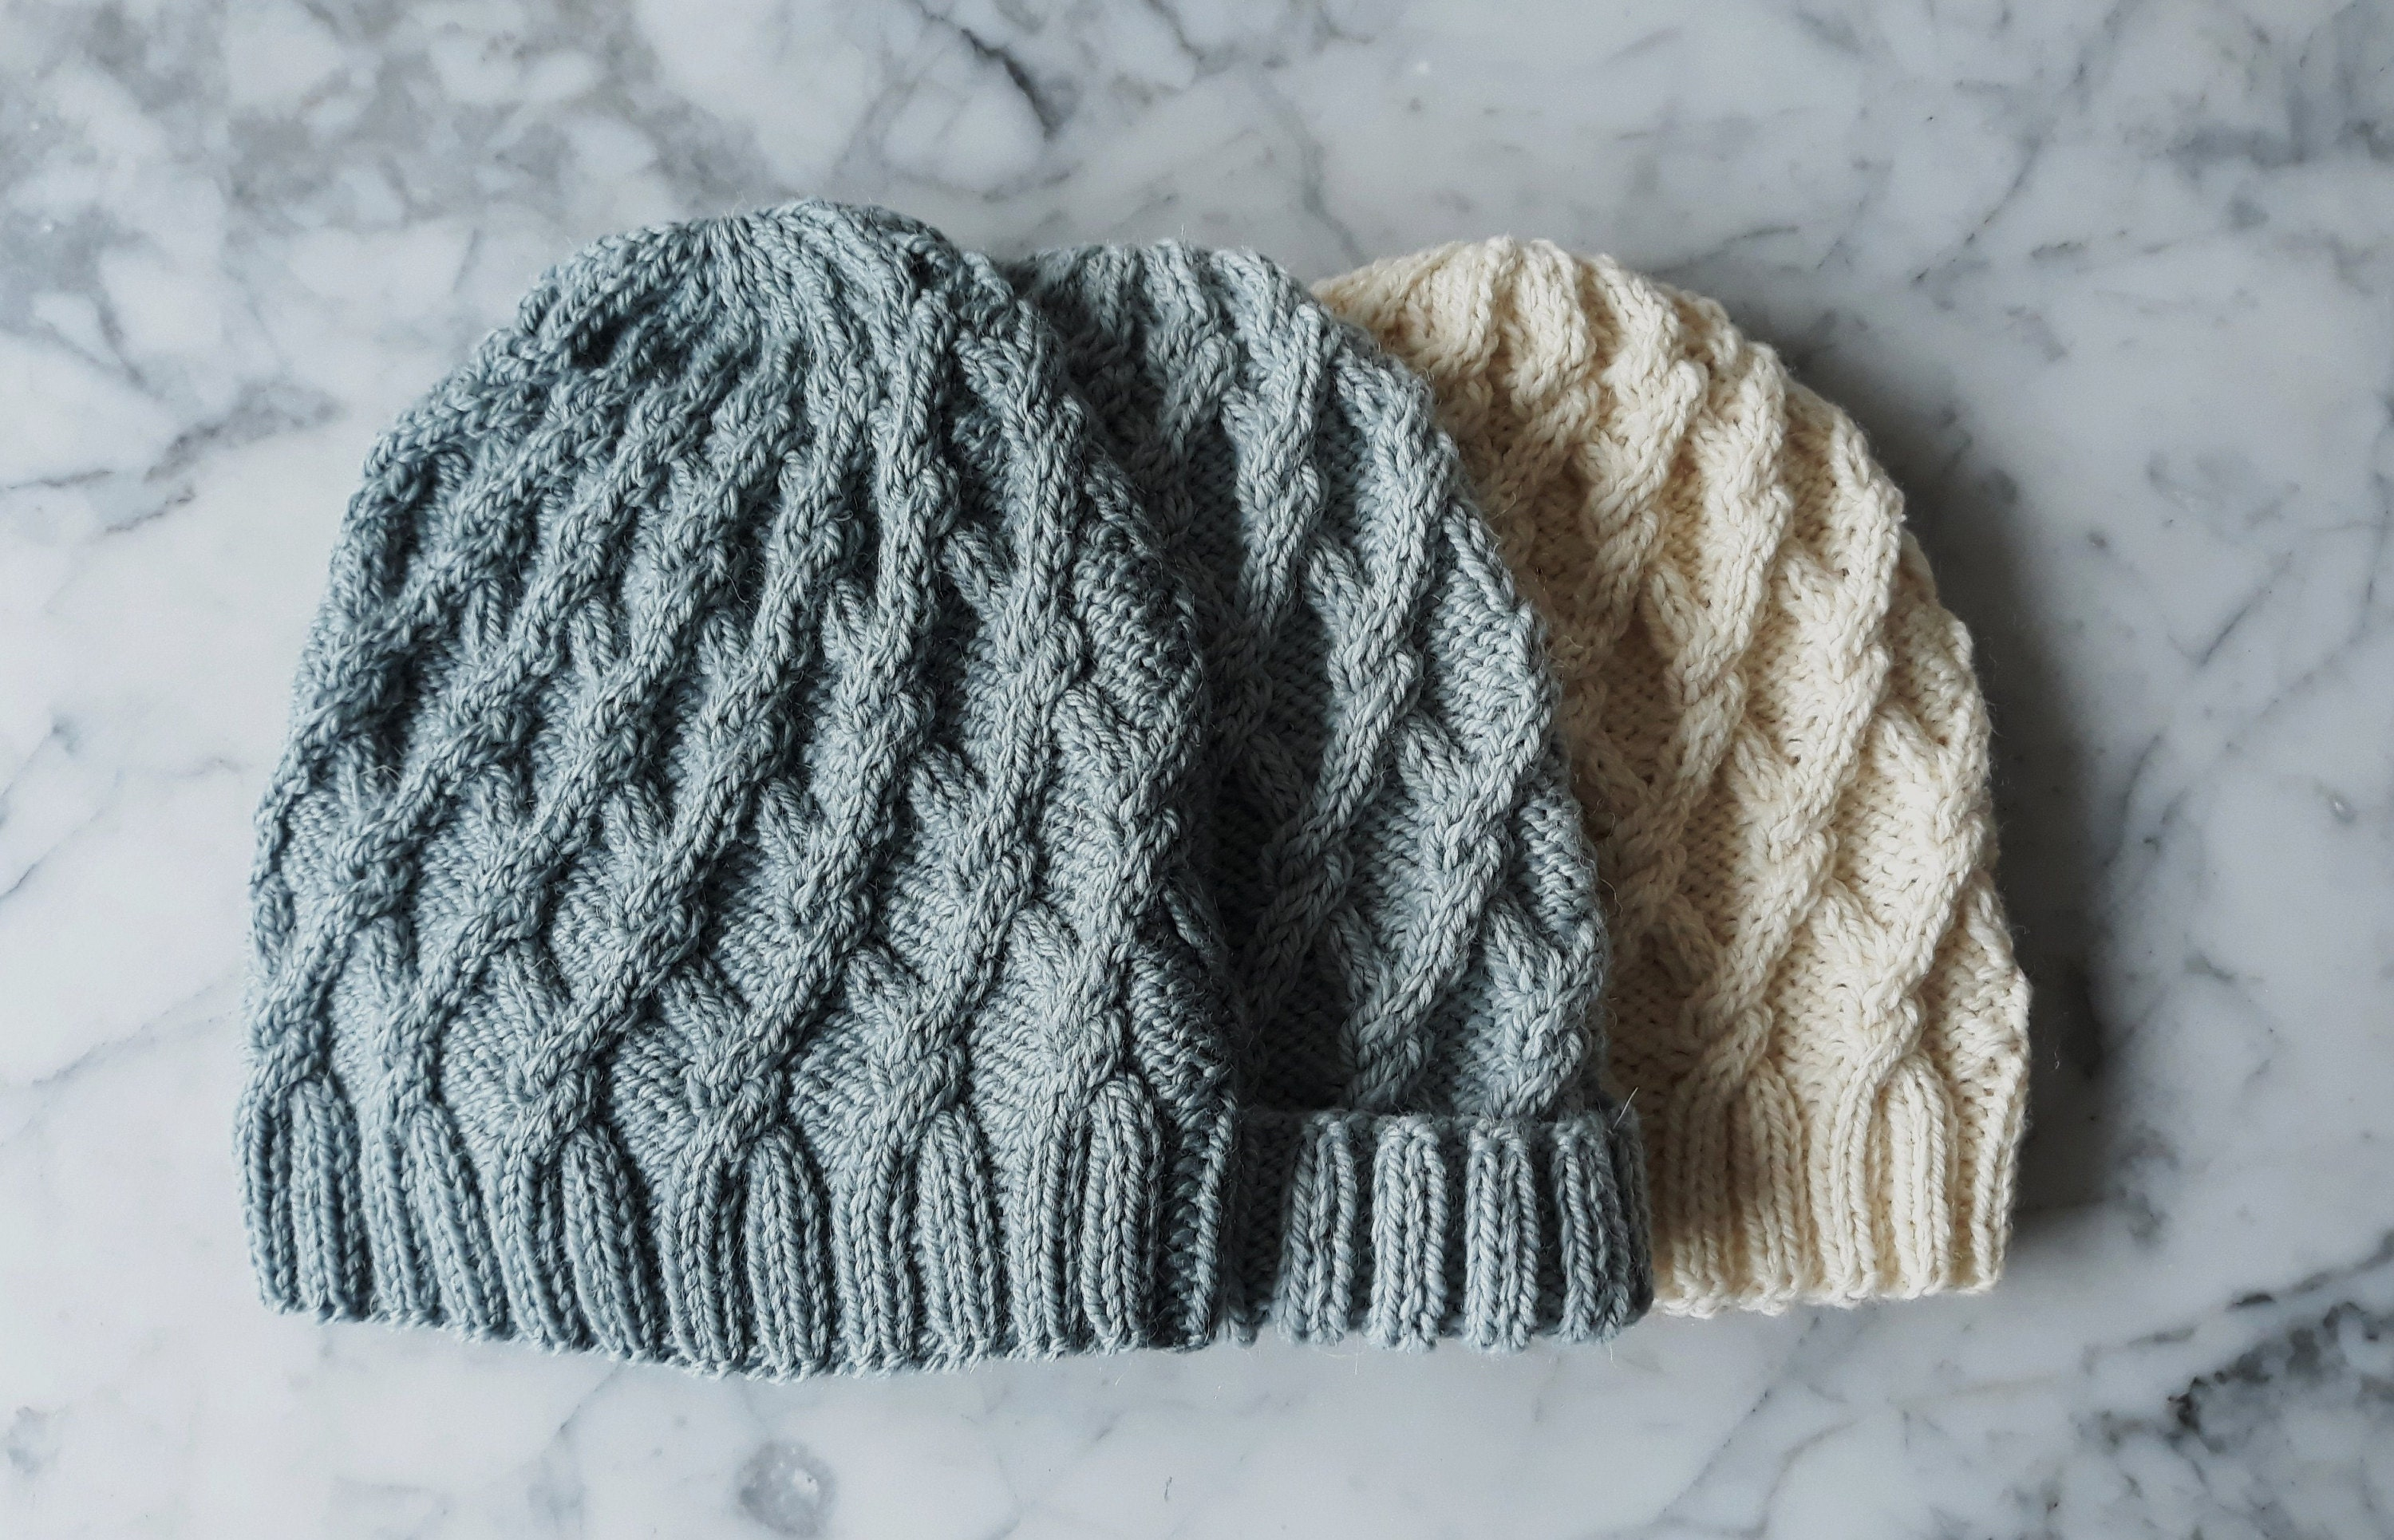 Three knitted cabled hats are laid flat, the hats are different colours: two are grey and one is creamy white.